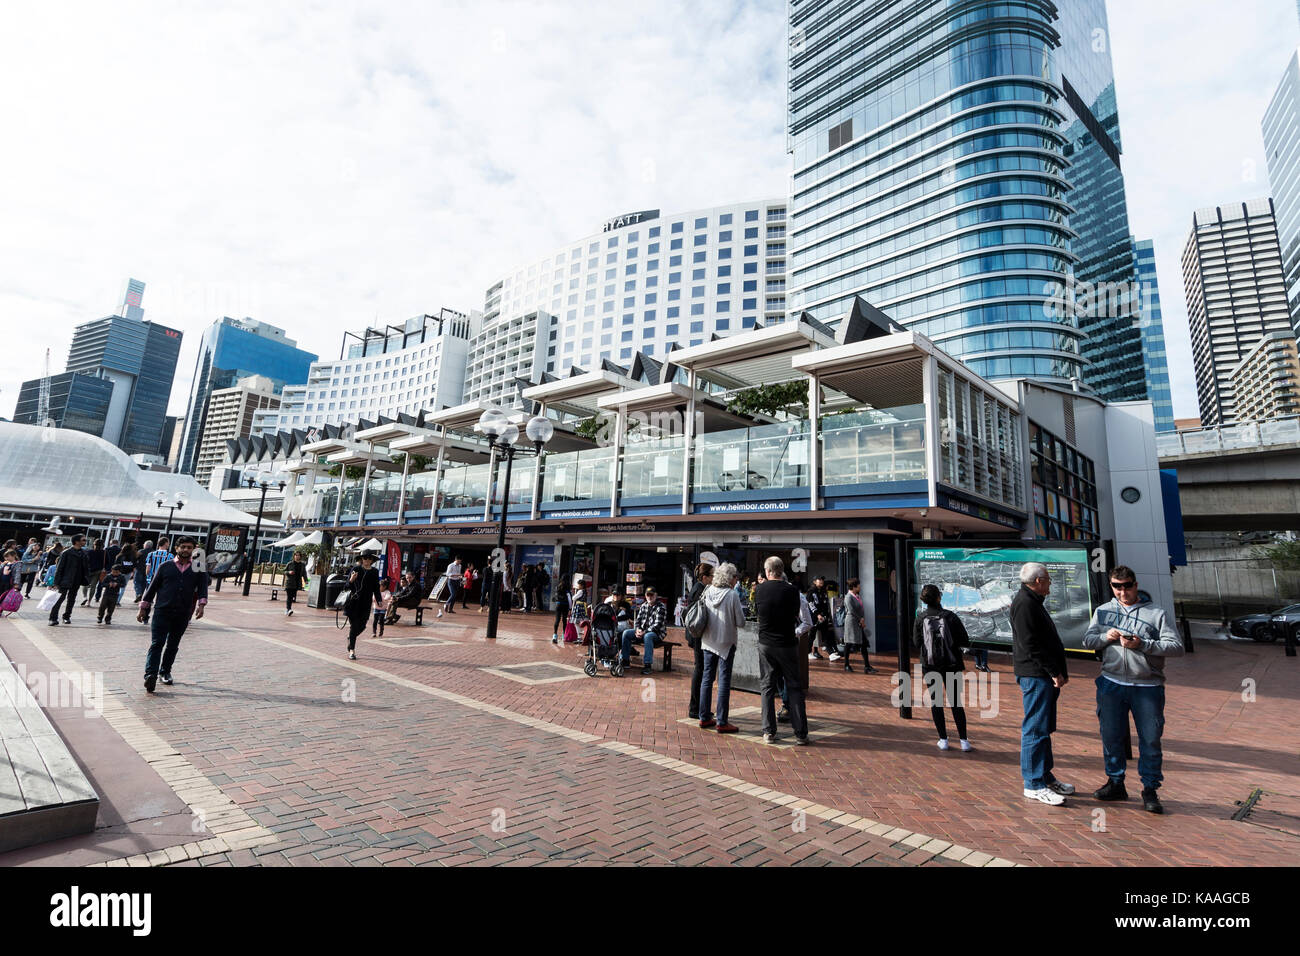 The Promenade with a variety of eateries, large corporate businesses and tourist attractions at Darling Harbour - Stock Image